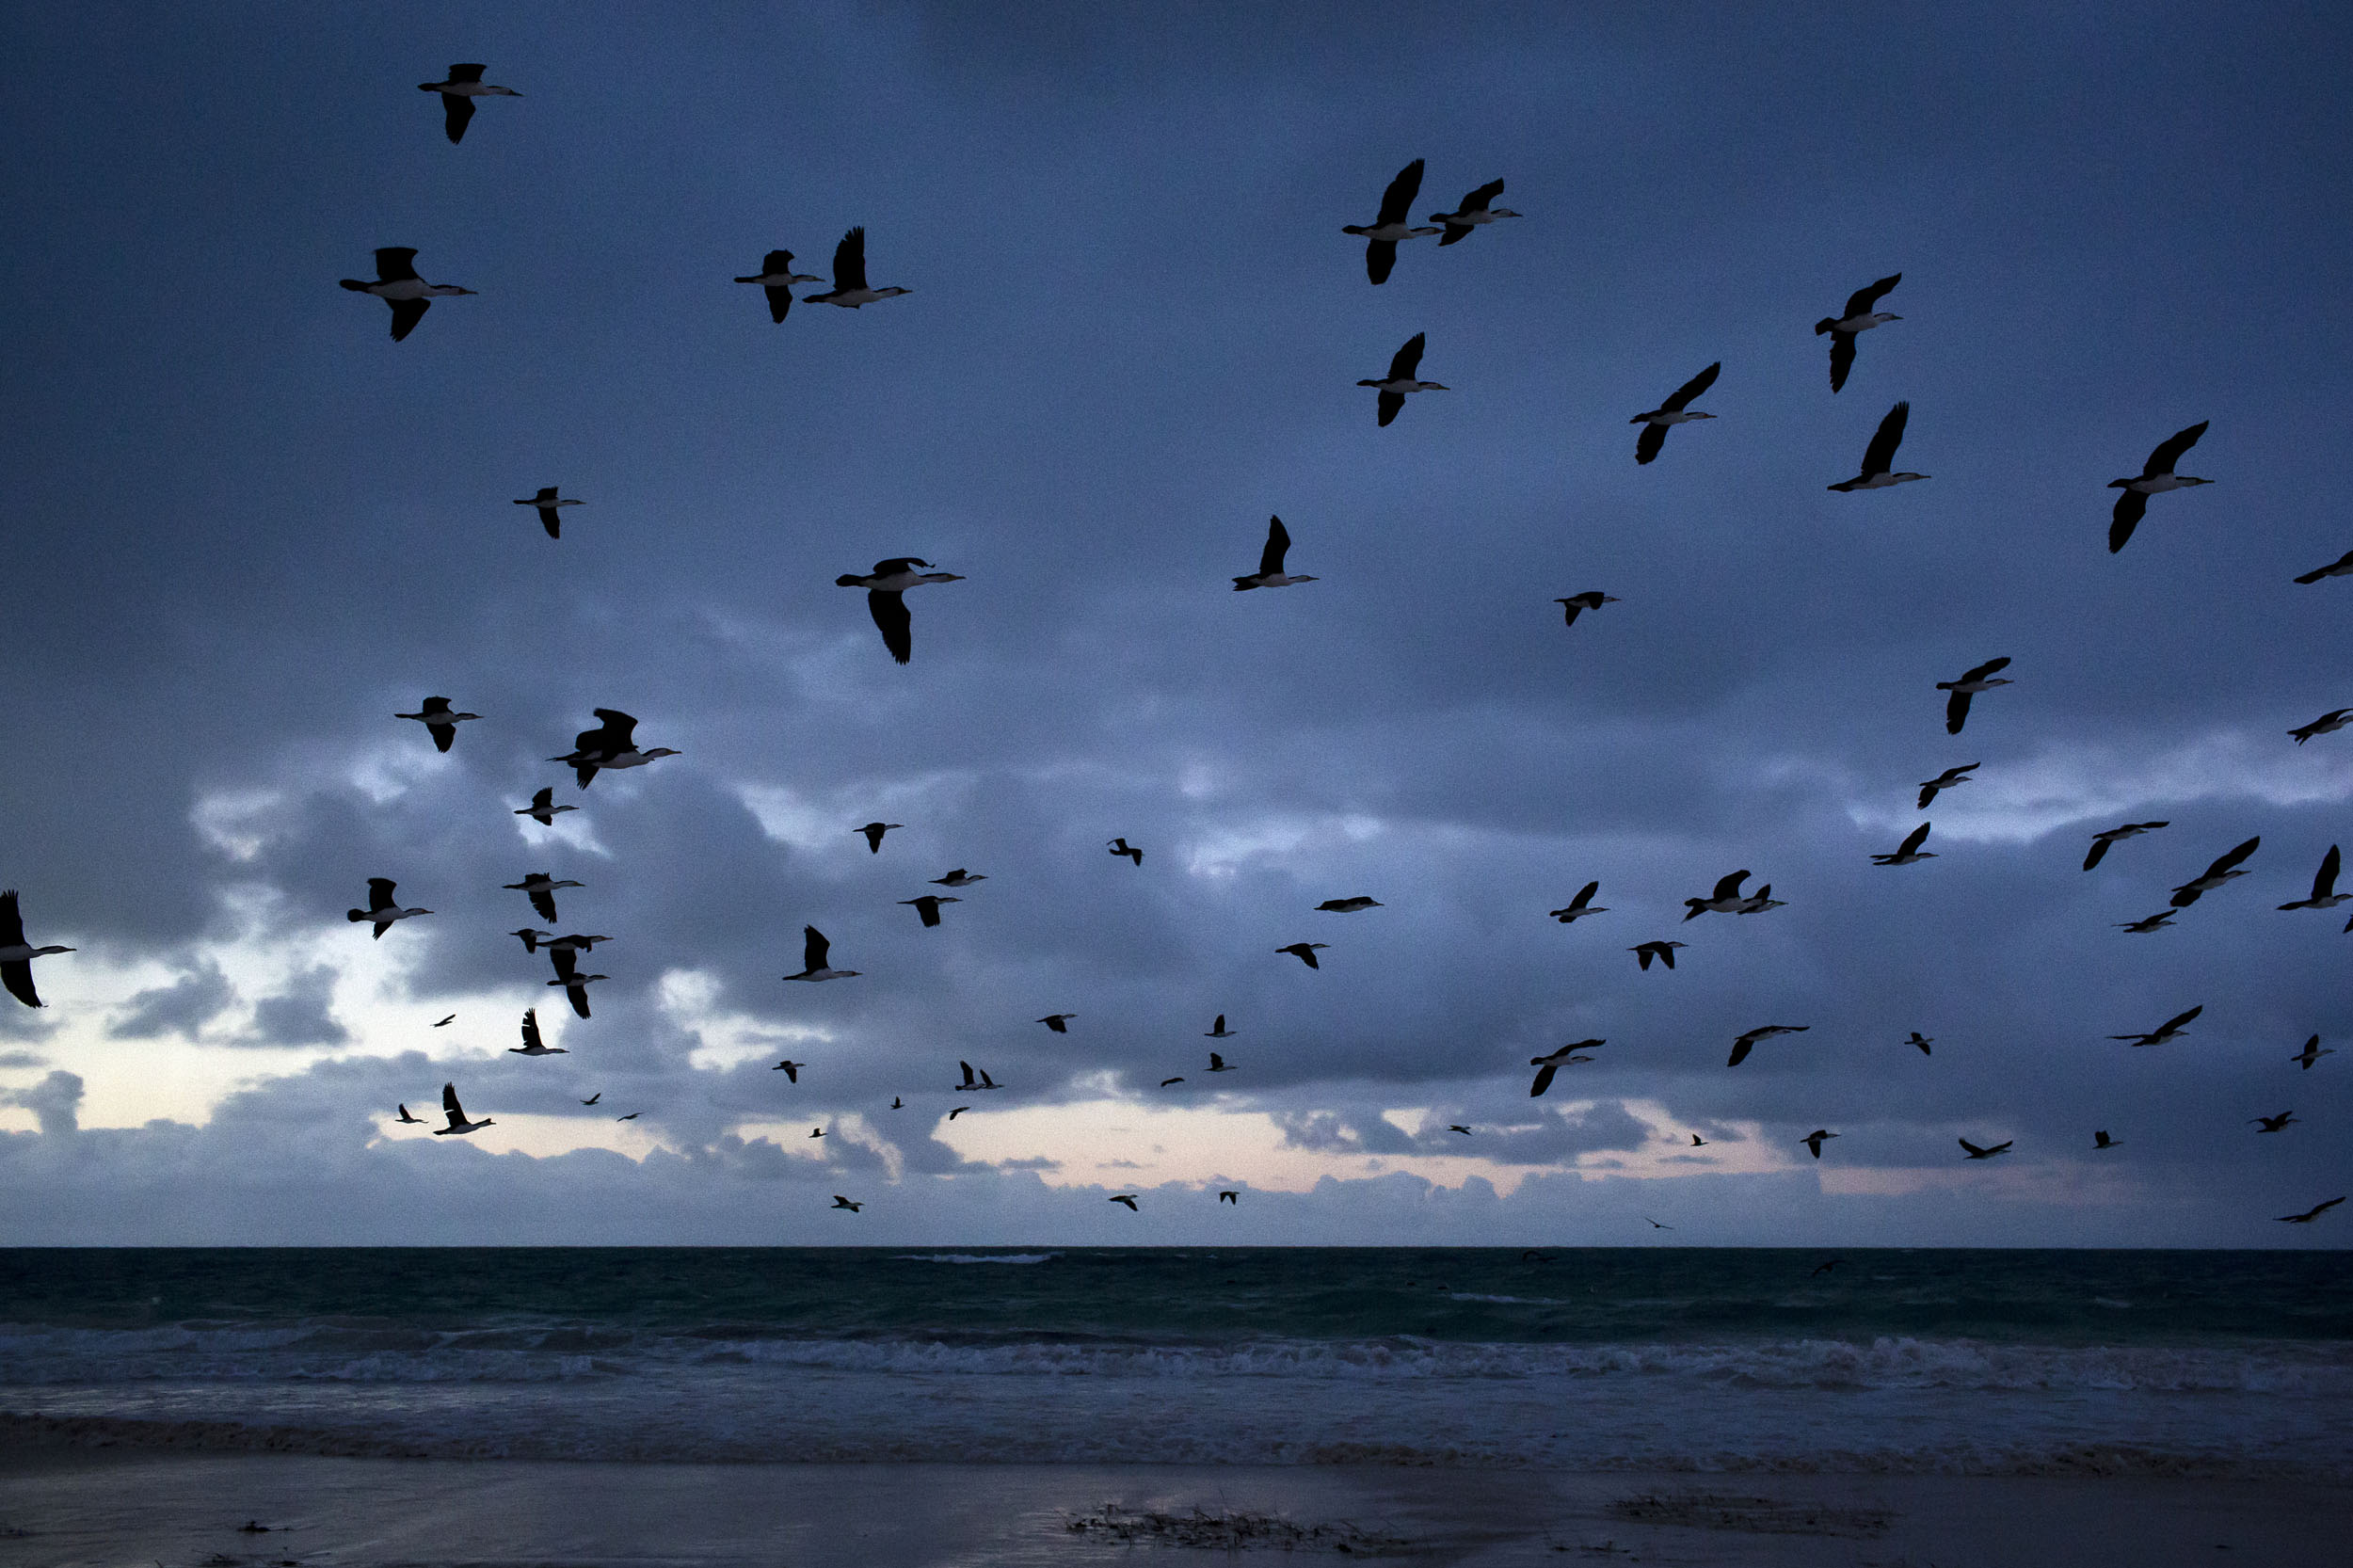 Seabirds known as Shags take flight at dawn at the beach, Eucla, Western Australia.